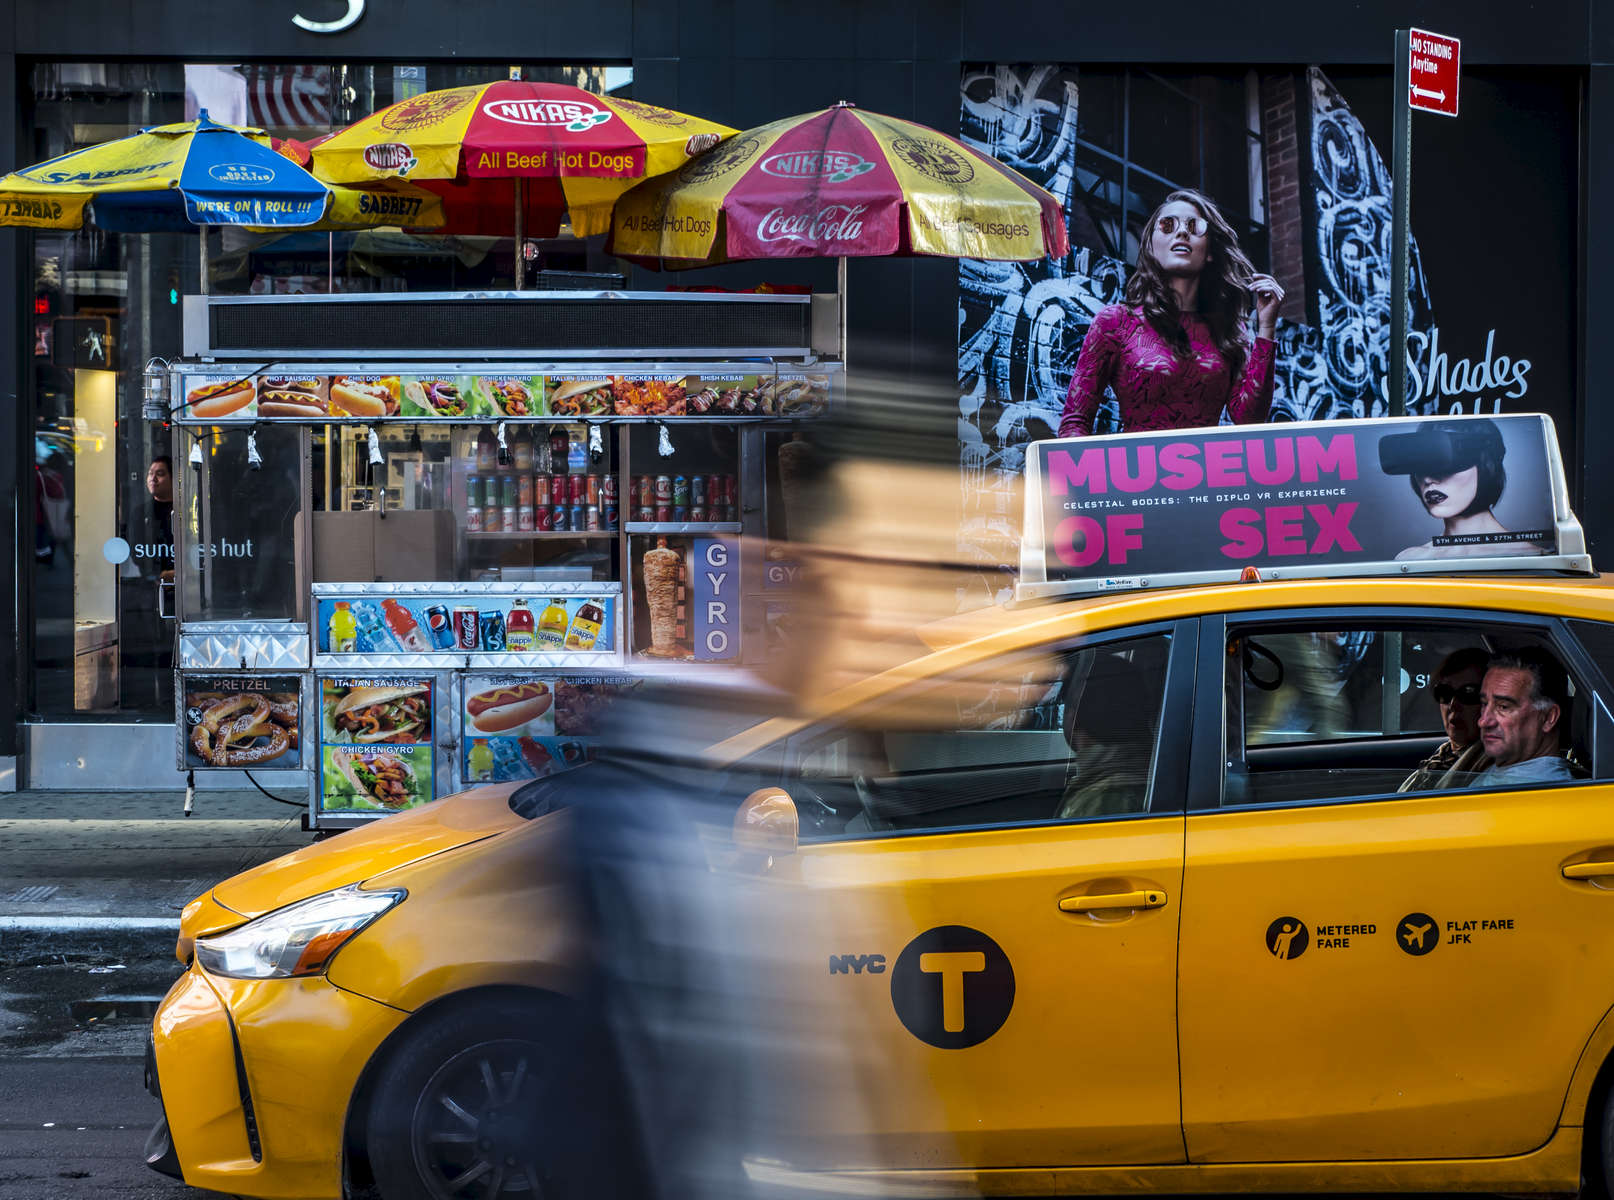 A pedestrian walks by a taxi with an advertisement for the Museum of Sex on it's roof in Midtown, Manhattan on Thursday, October 19, 2017.